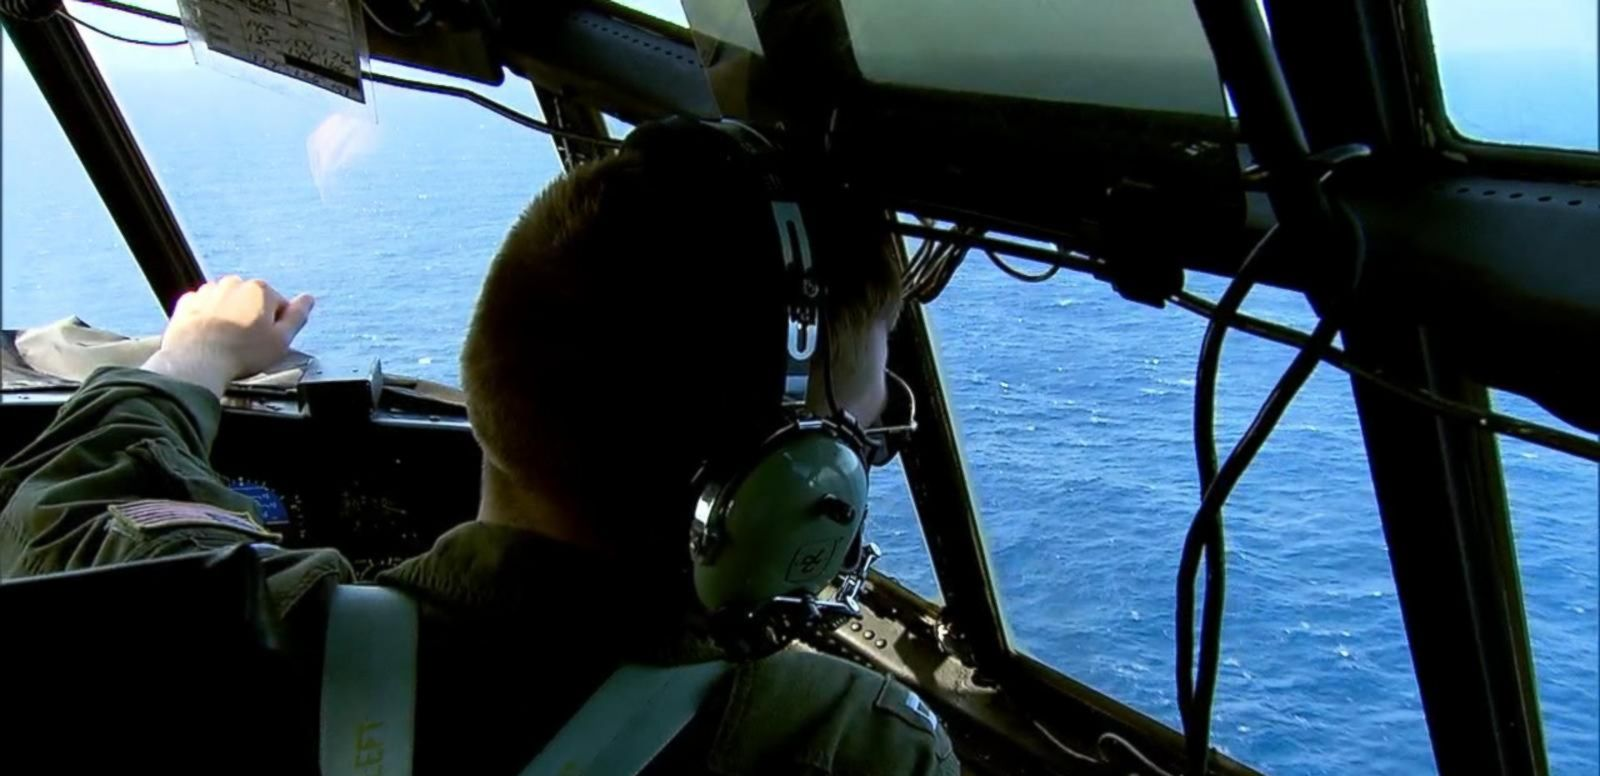 VIDEO: Debris Found in Search for Missing US Cargo Ship